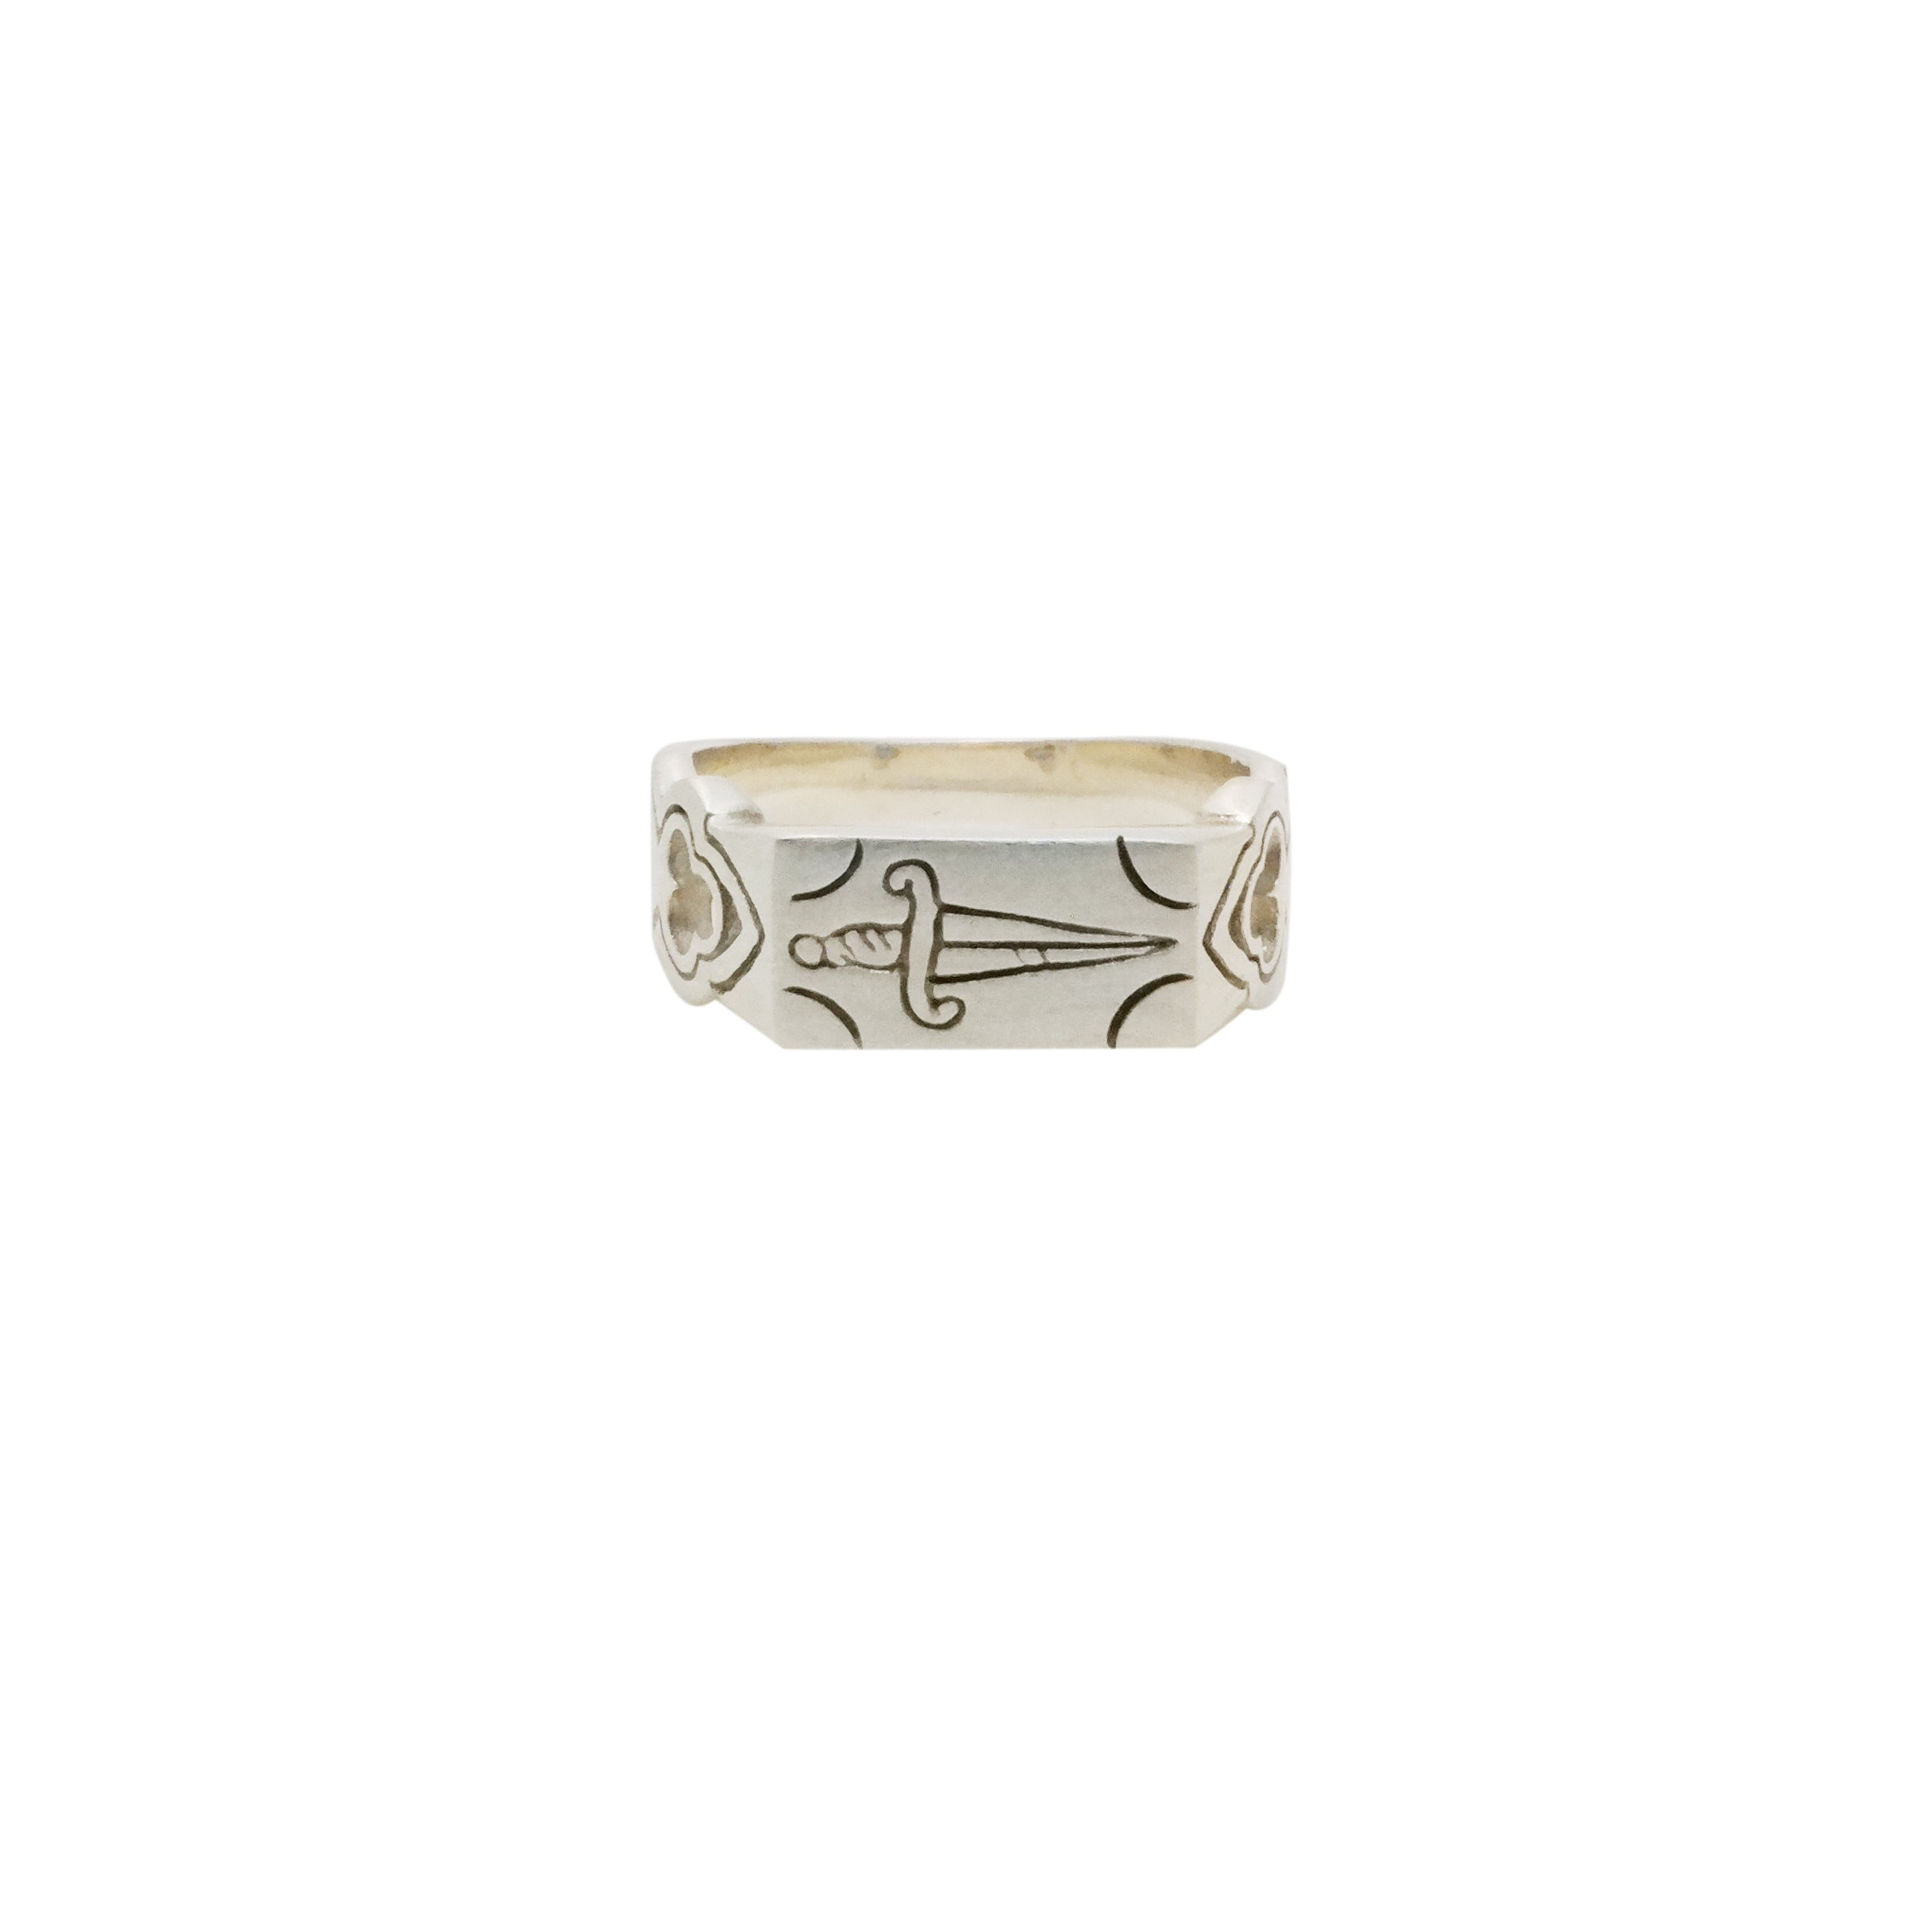 HuntOfHounds_ProtectionHunt Of Hounds Protection Ring. Dagger with Gothic details.